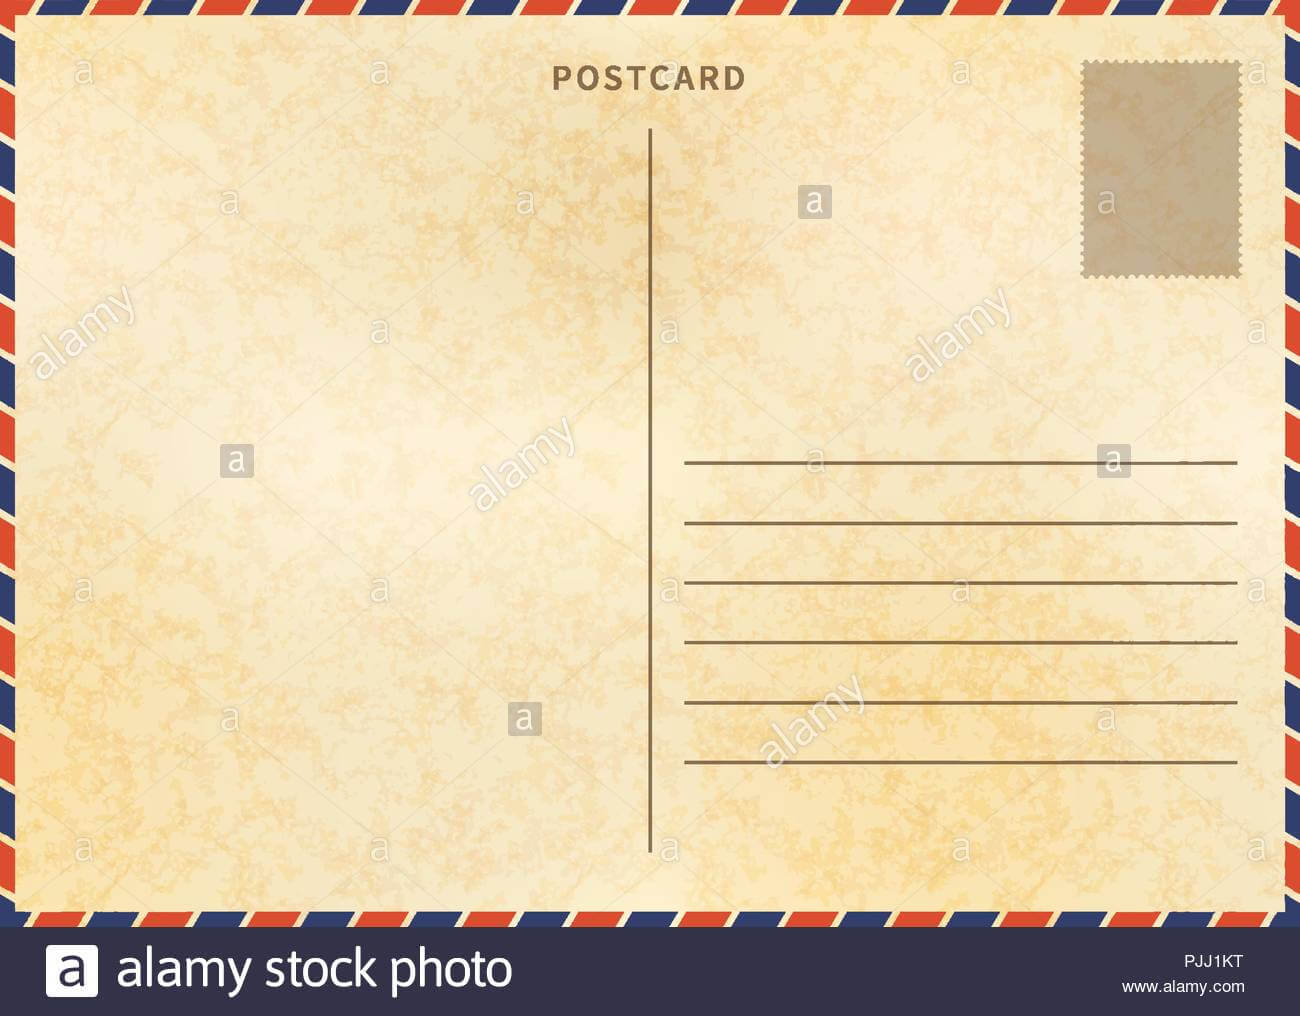 Retro Blank Postcard Template With Airmail Border And Paper Within Airmail Postcard Template